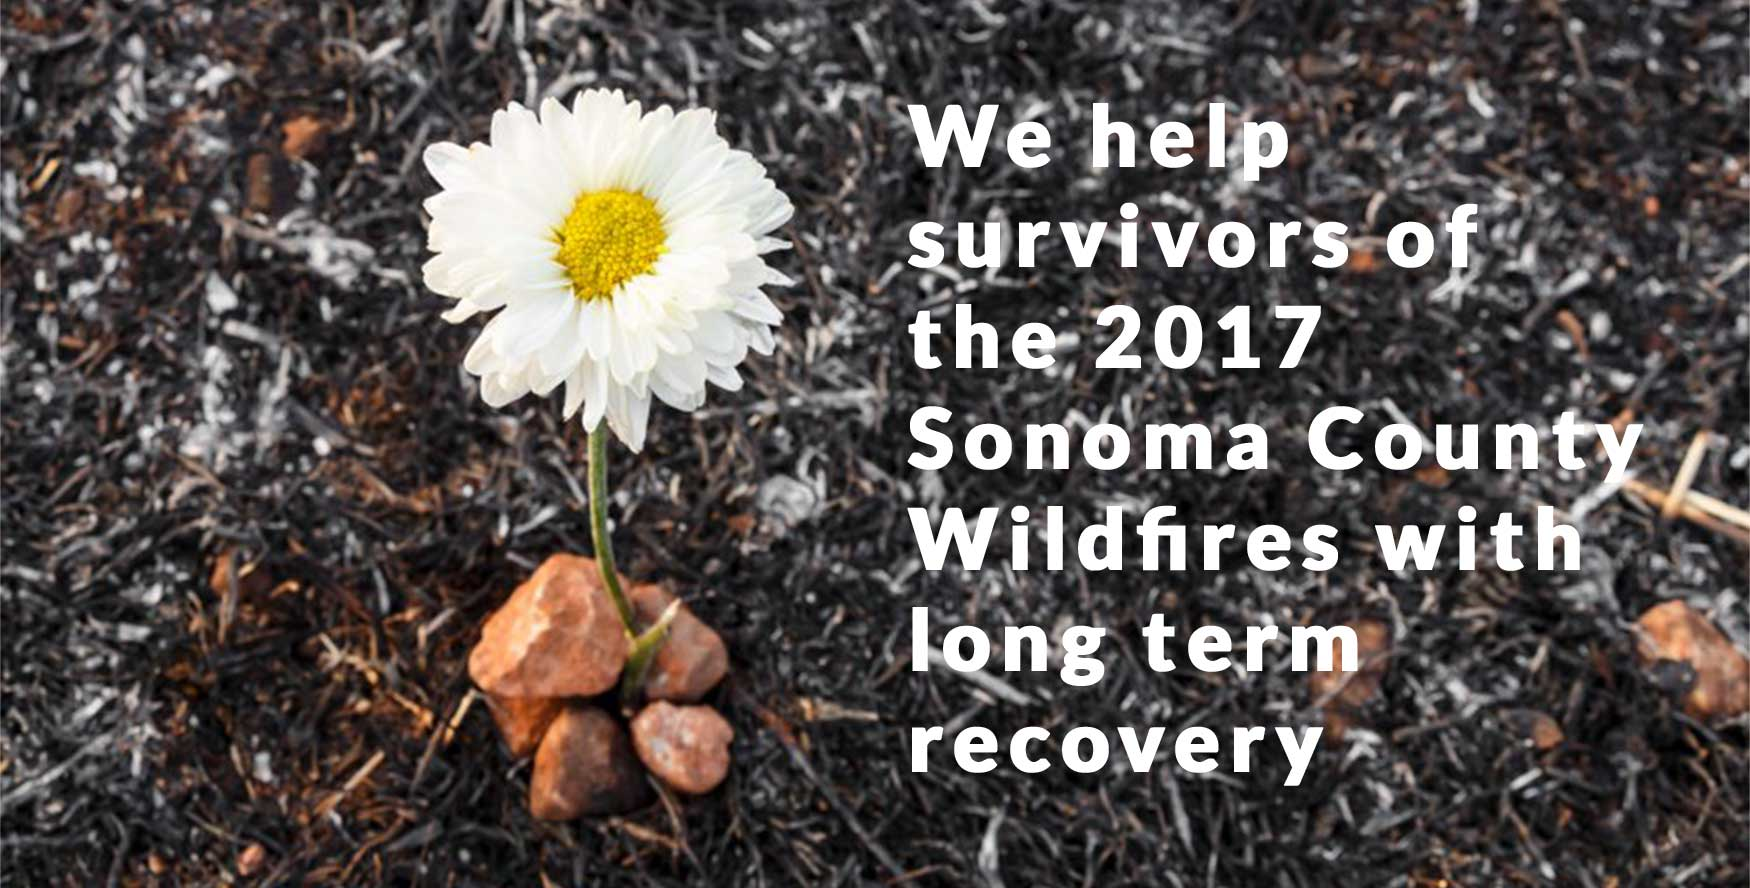 We help survivors of the 2017 Sonoma County Wildfires with long term recovery